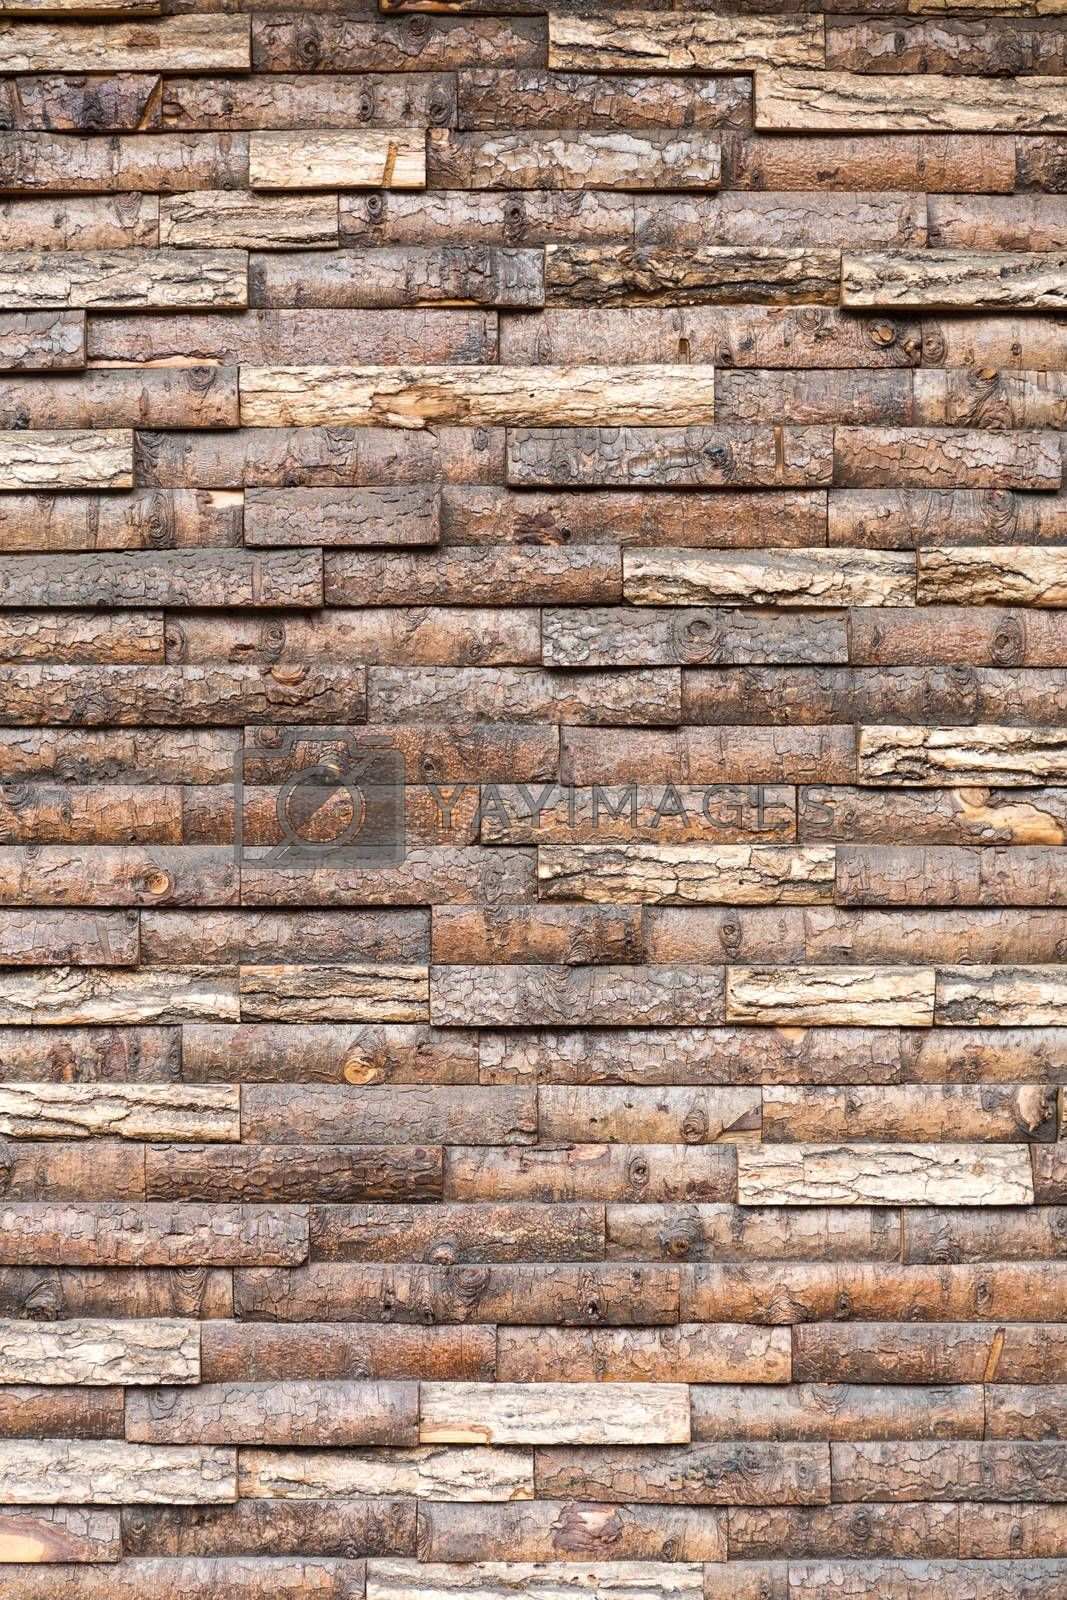 Wooden Tiles Natural Rustic Wall Background